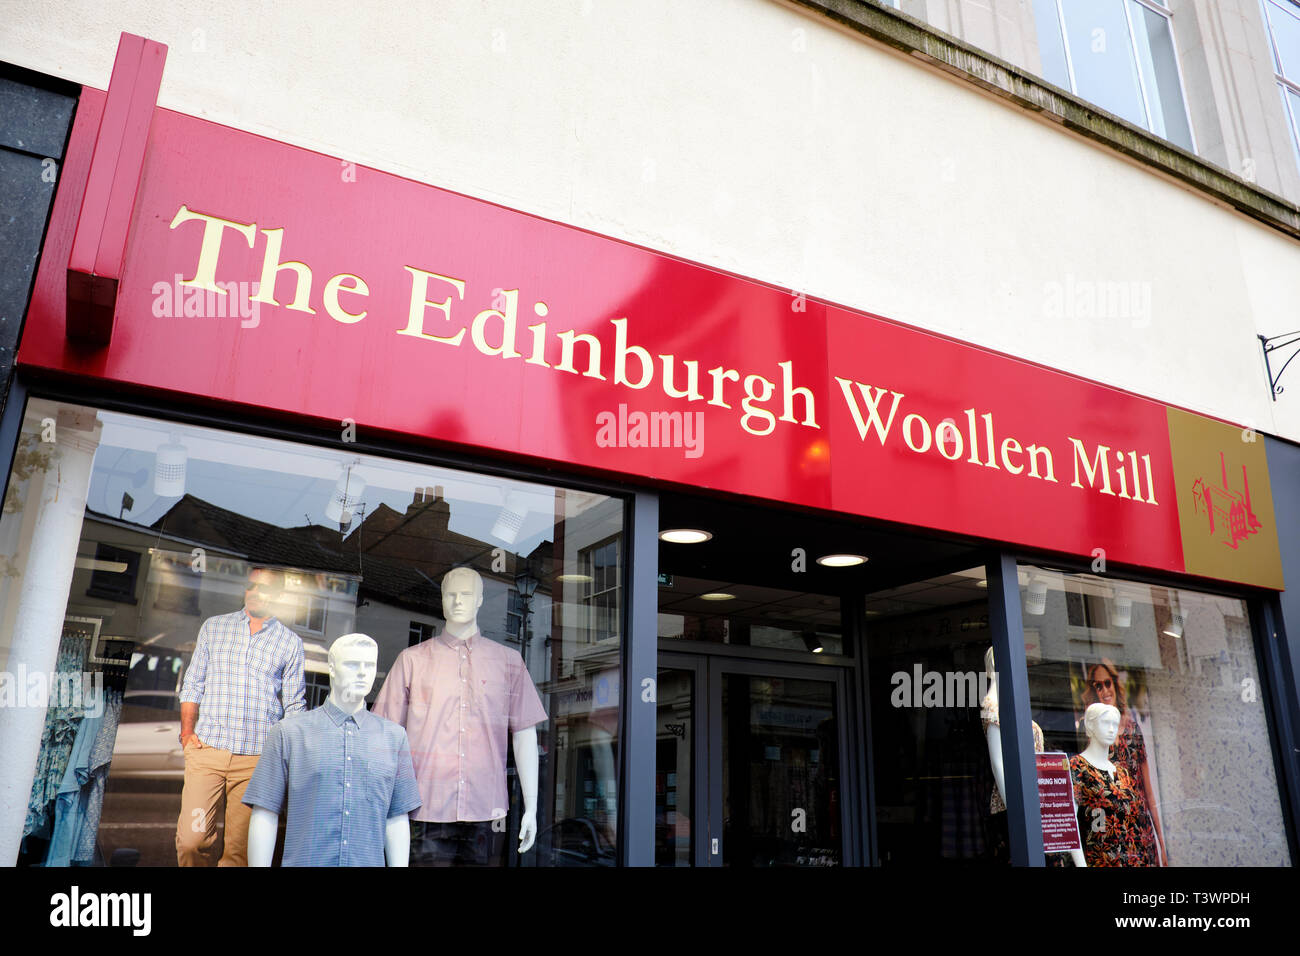 Edinburgh Woollen Mill High Resolution Stock Photography And Images Alamy